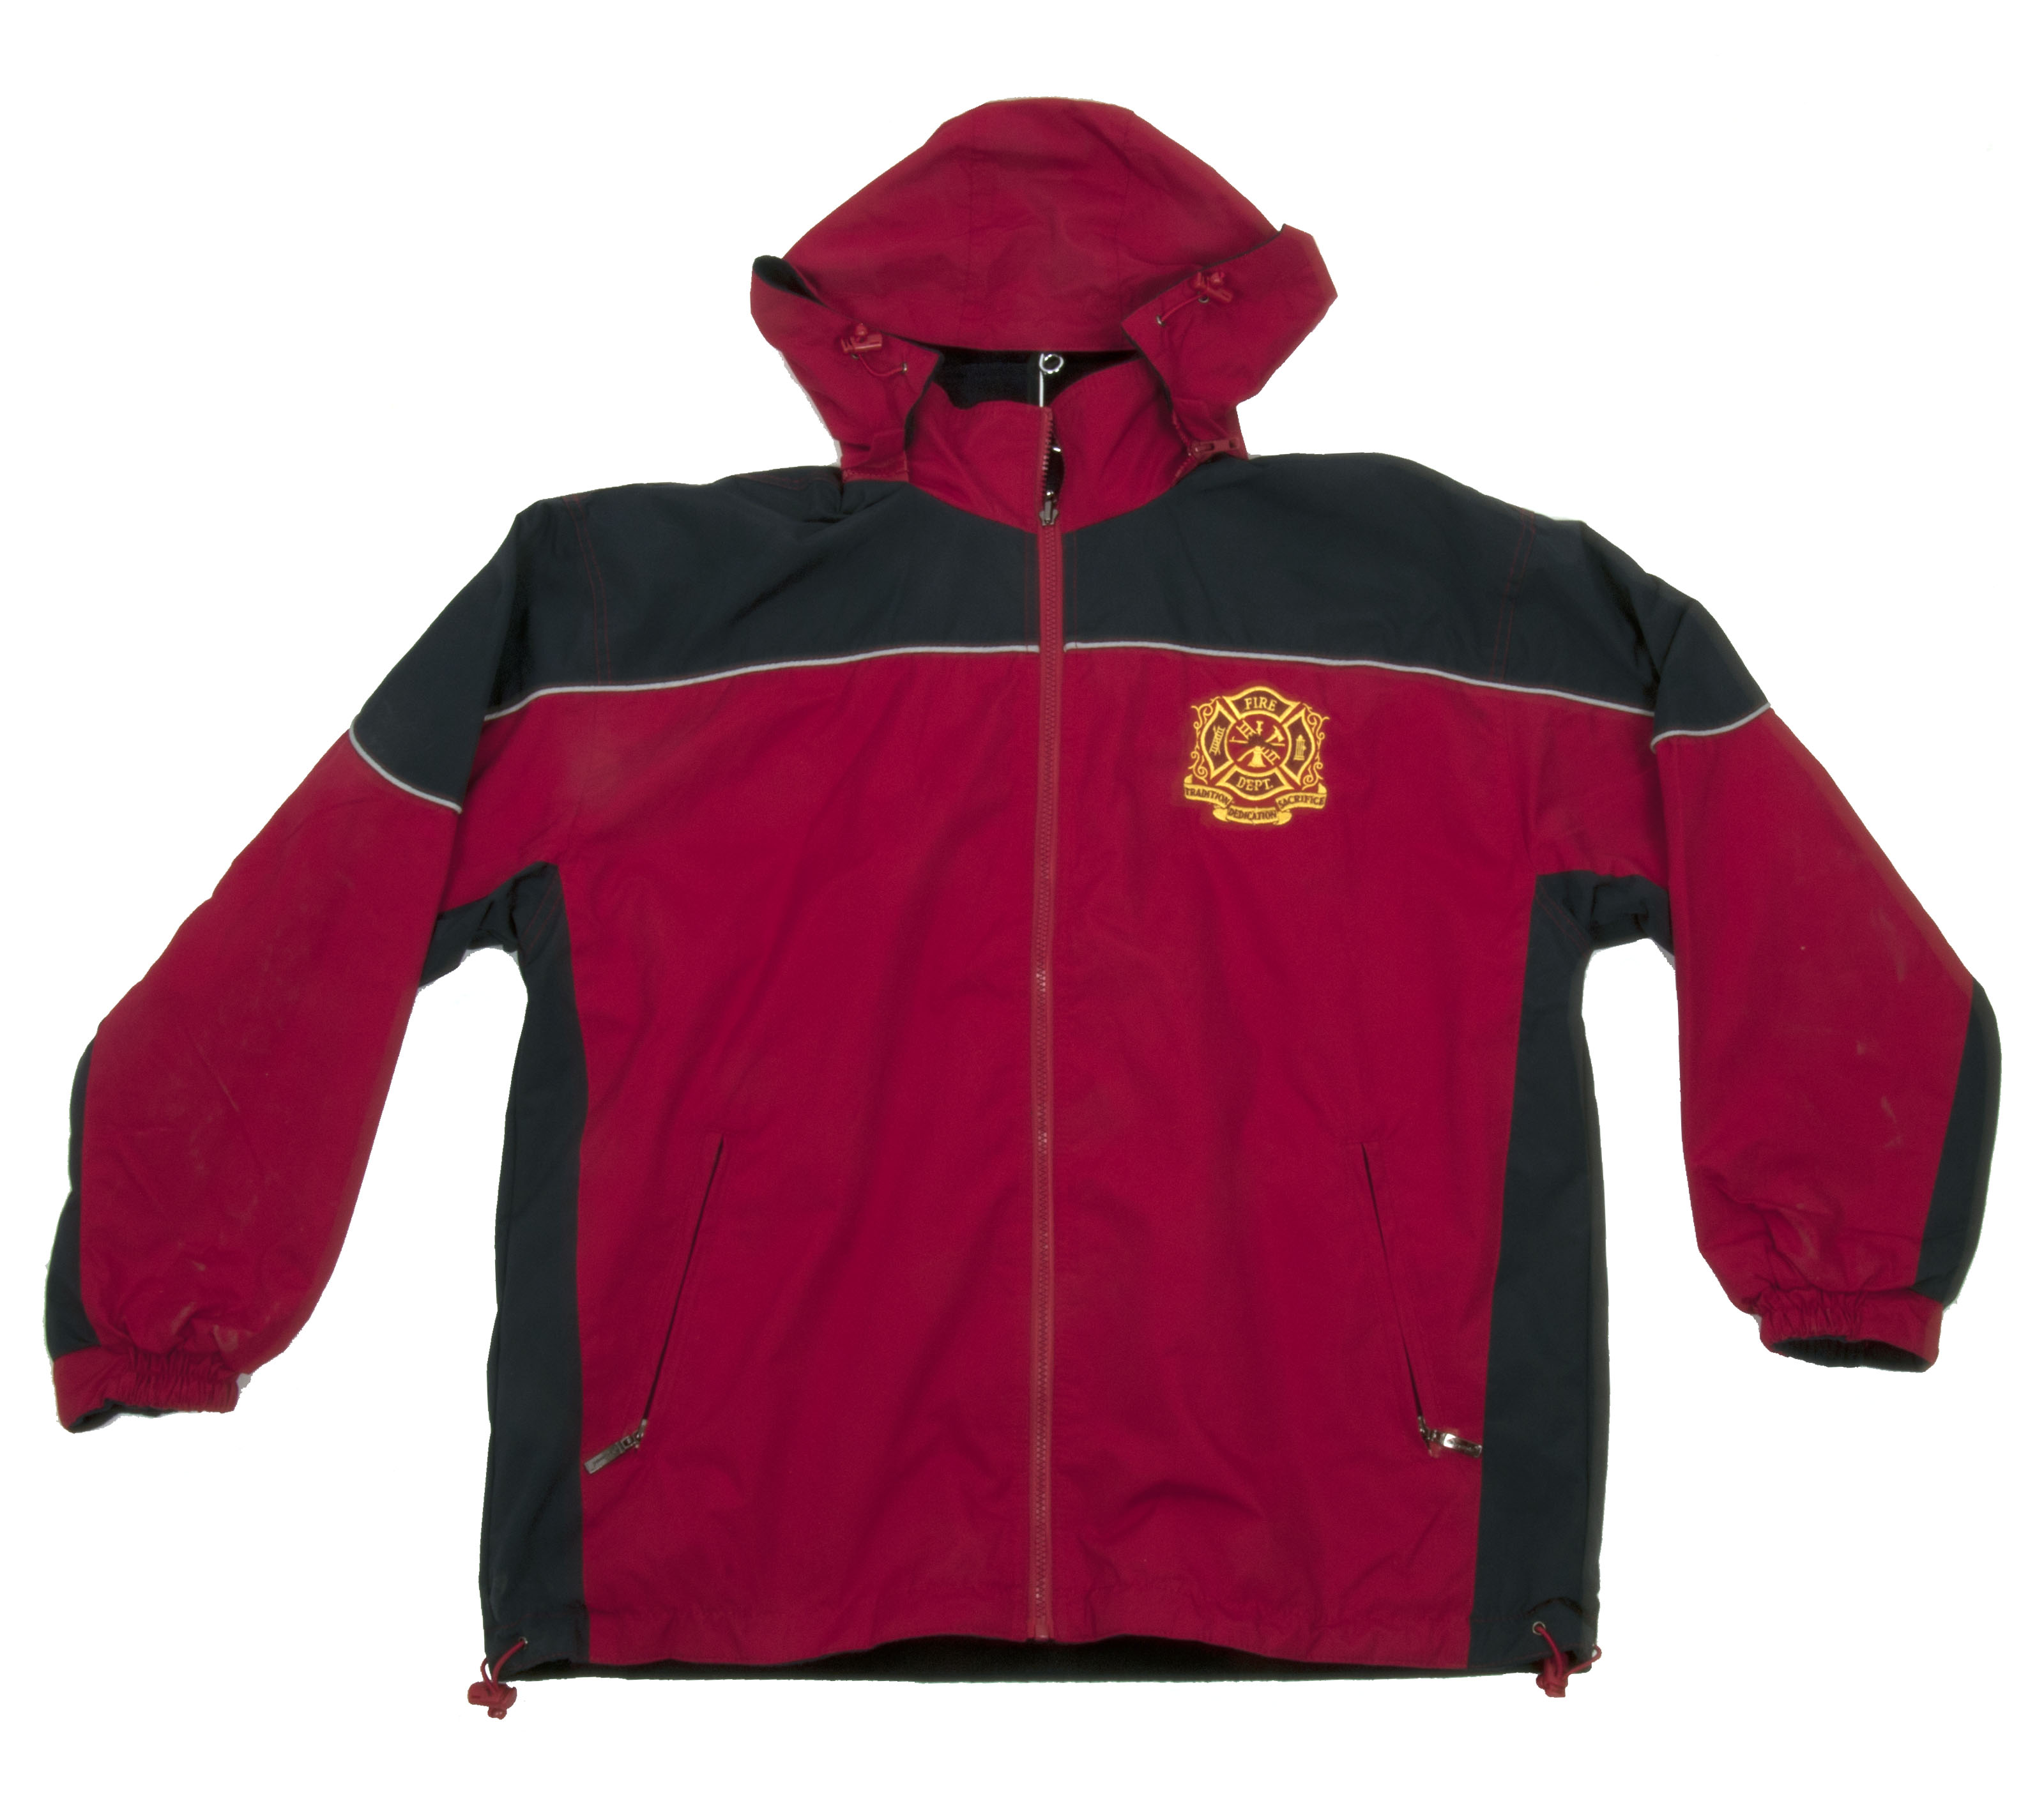 Fire Department Reversible Jacket (Red/Black)